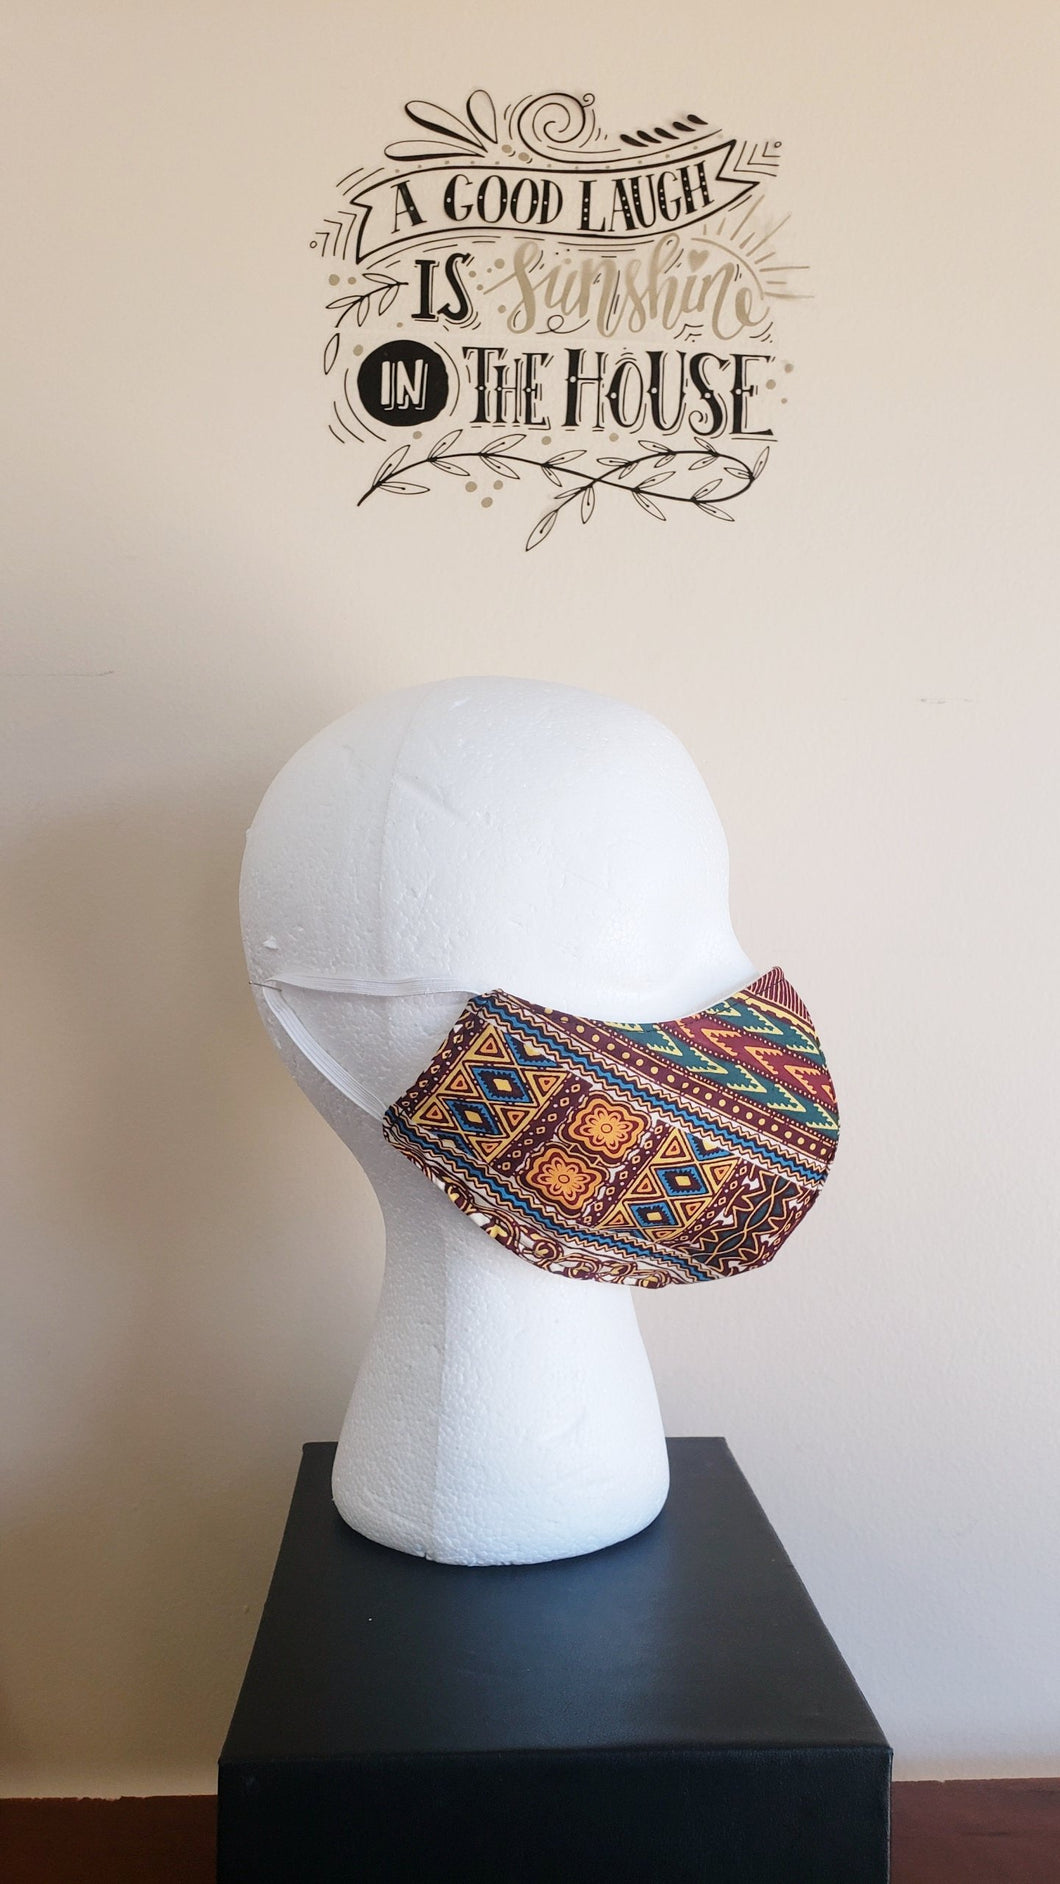 SOLD! NonFiltered Cotton Mask - DashikiWine2